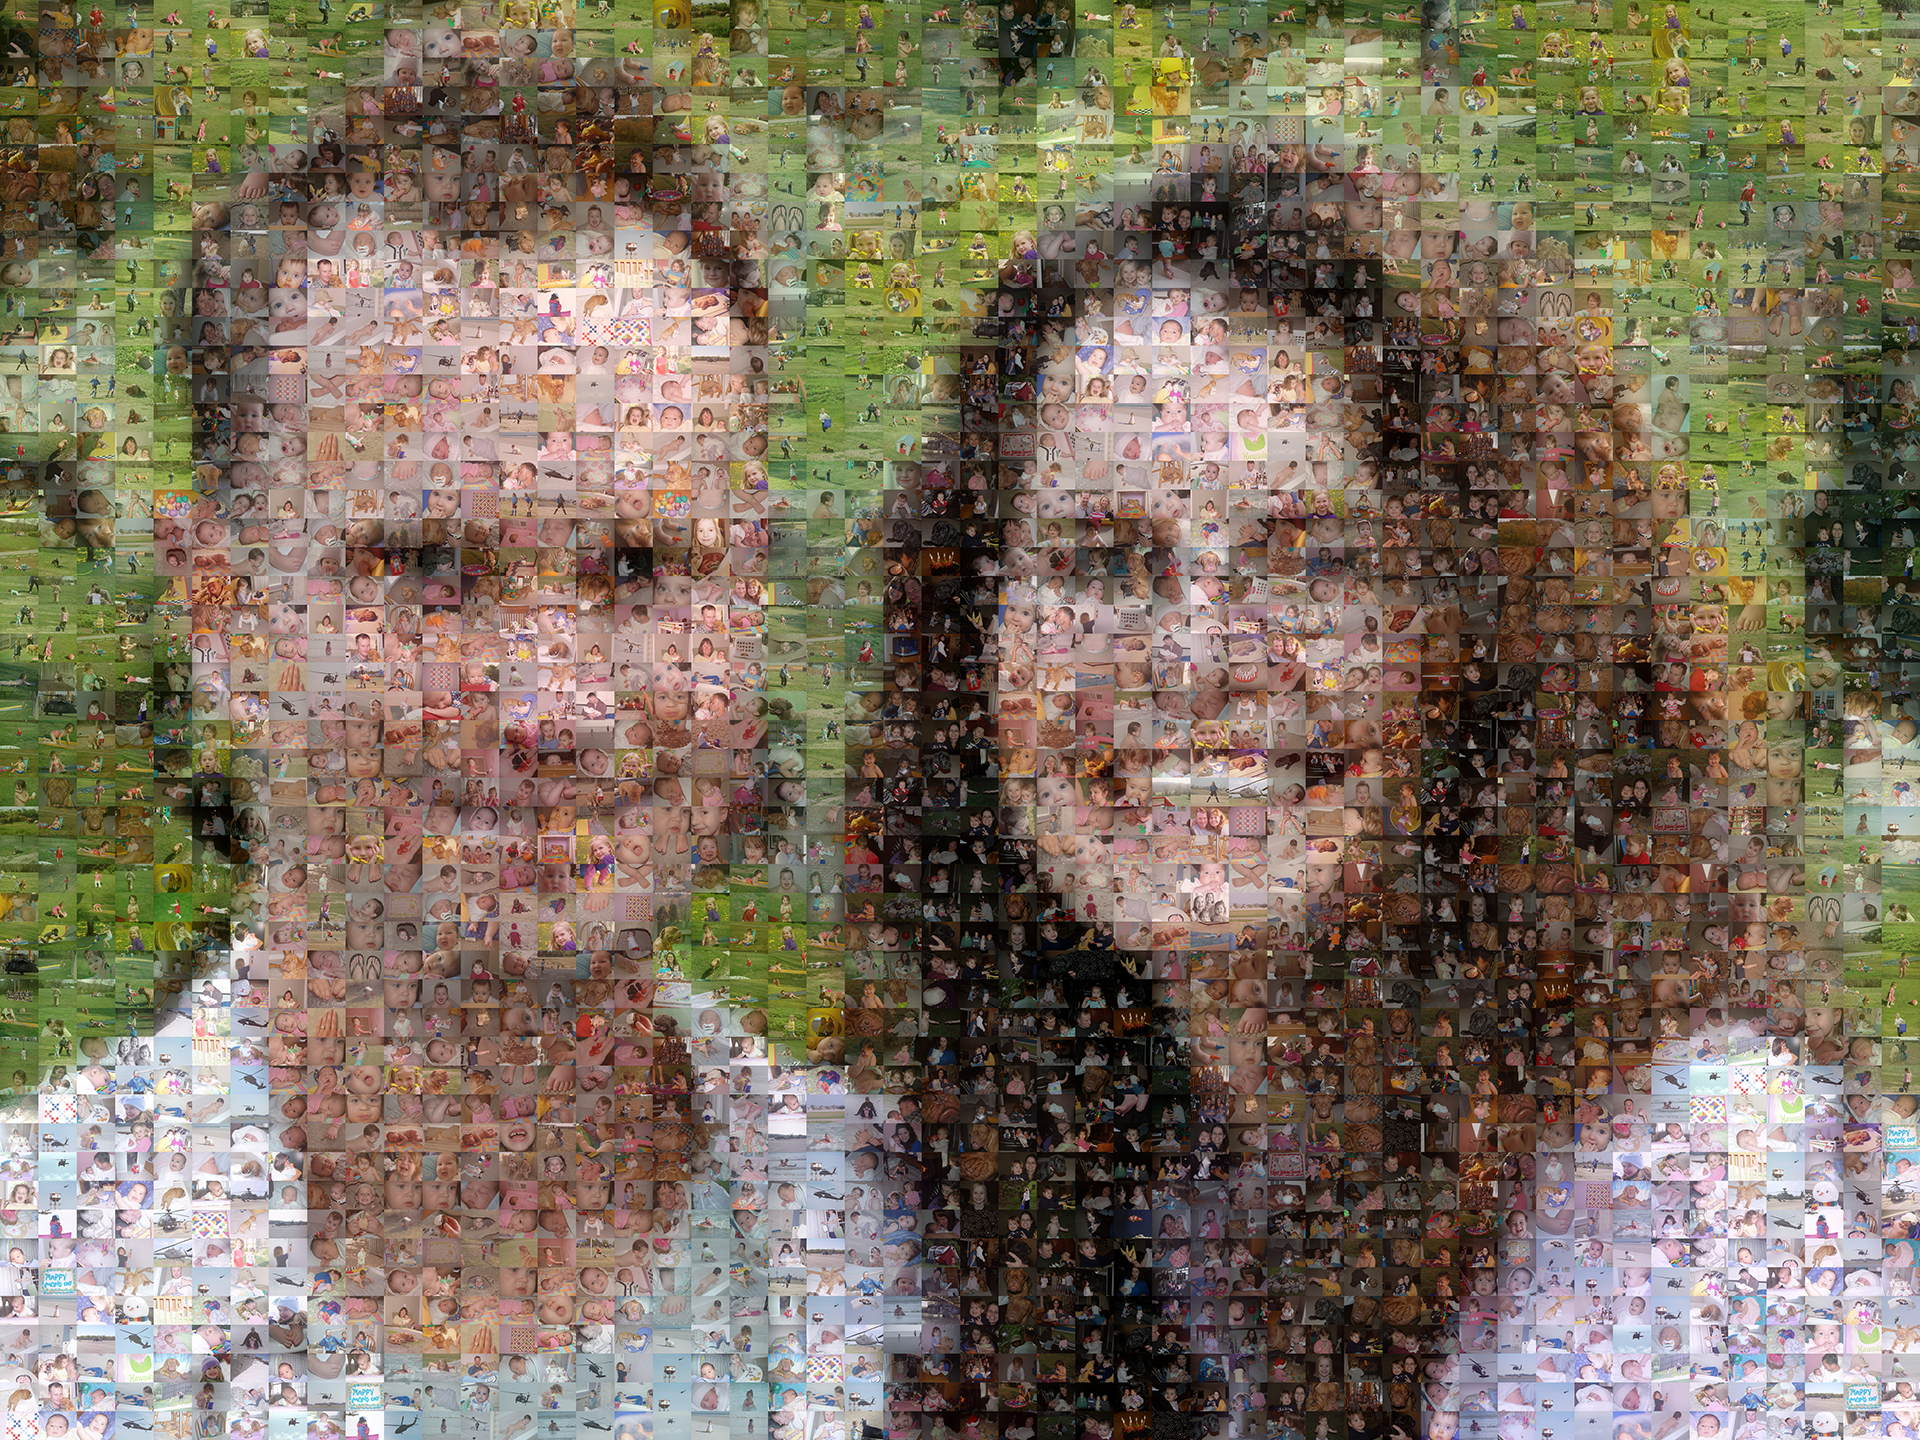 photo mosaic created using over 2400 customer selected photos